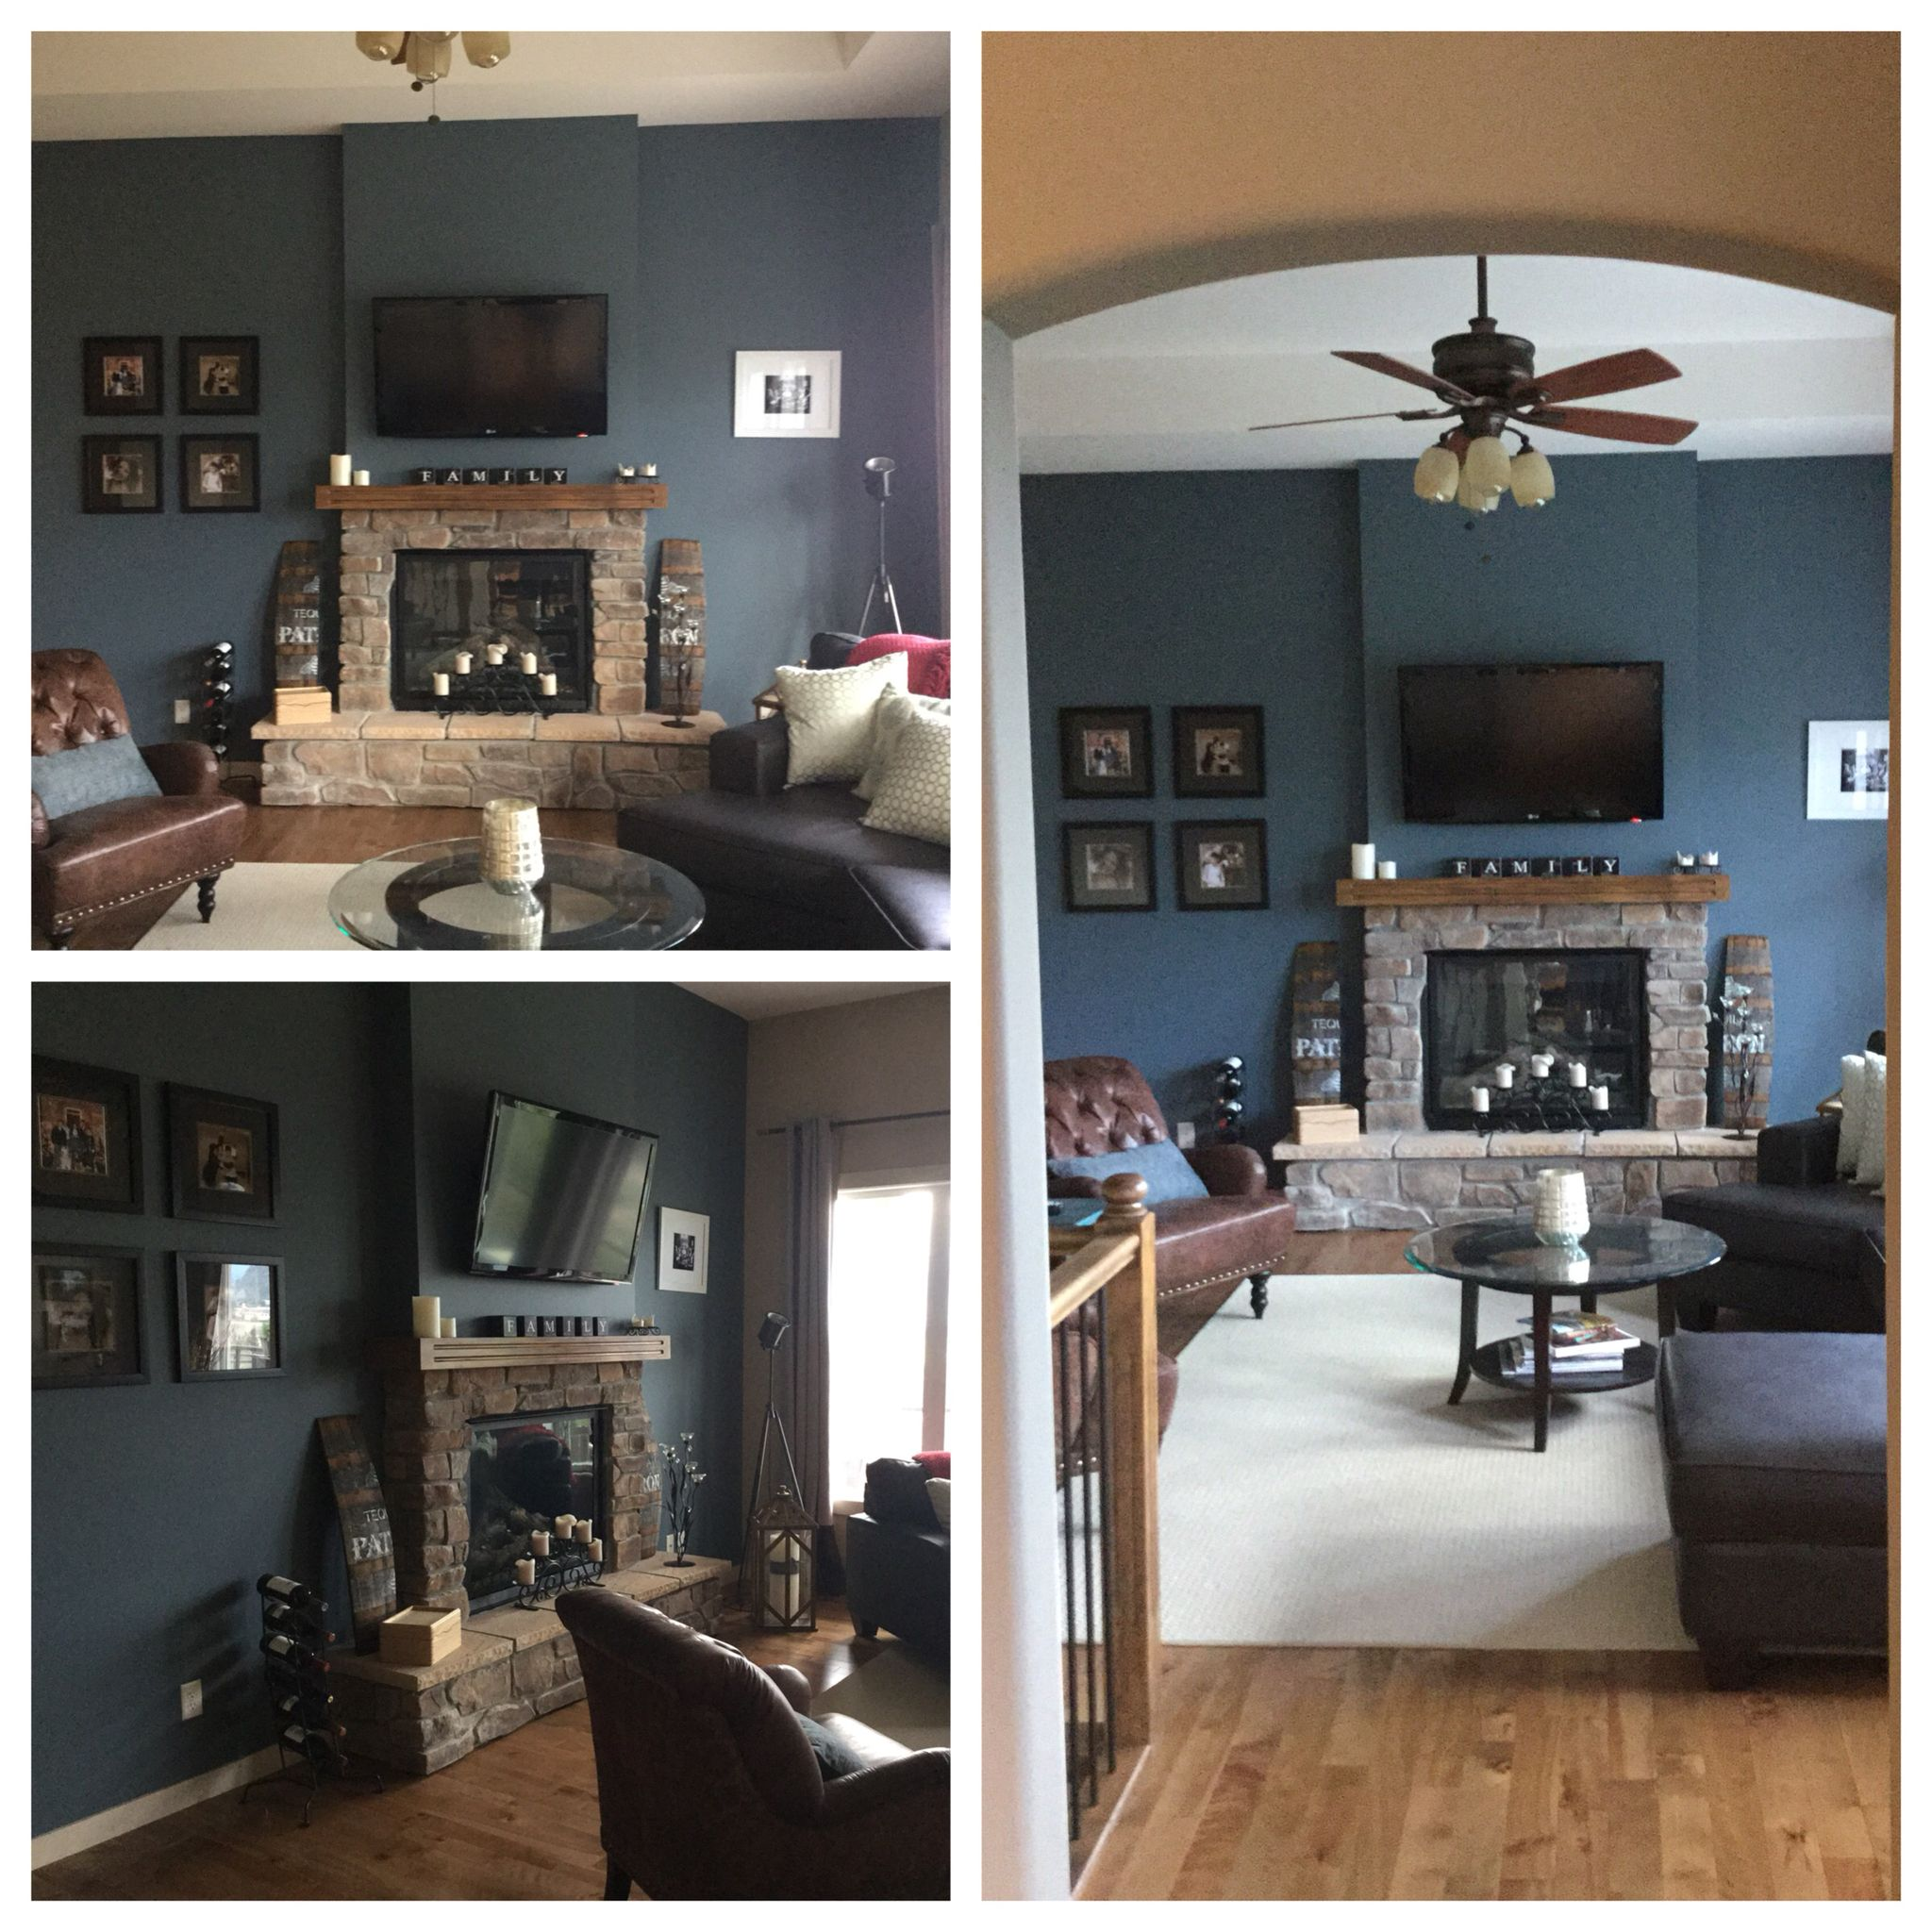 Sherwin williams paint colors sherwin williams 6249 storm cloud - Sherwin Williams Slate Tile Blue Grey Sw7624 Loving It